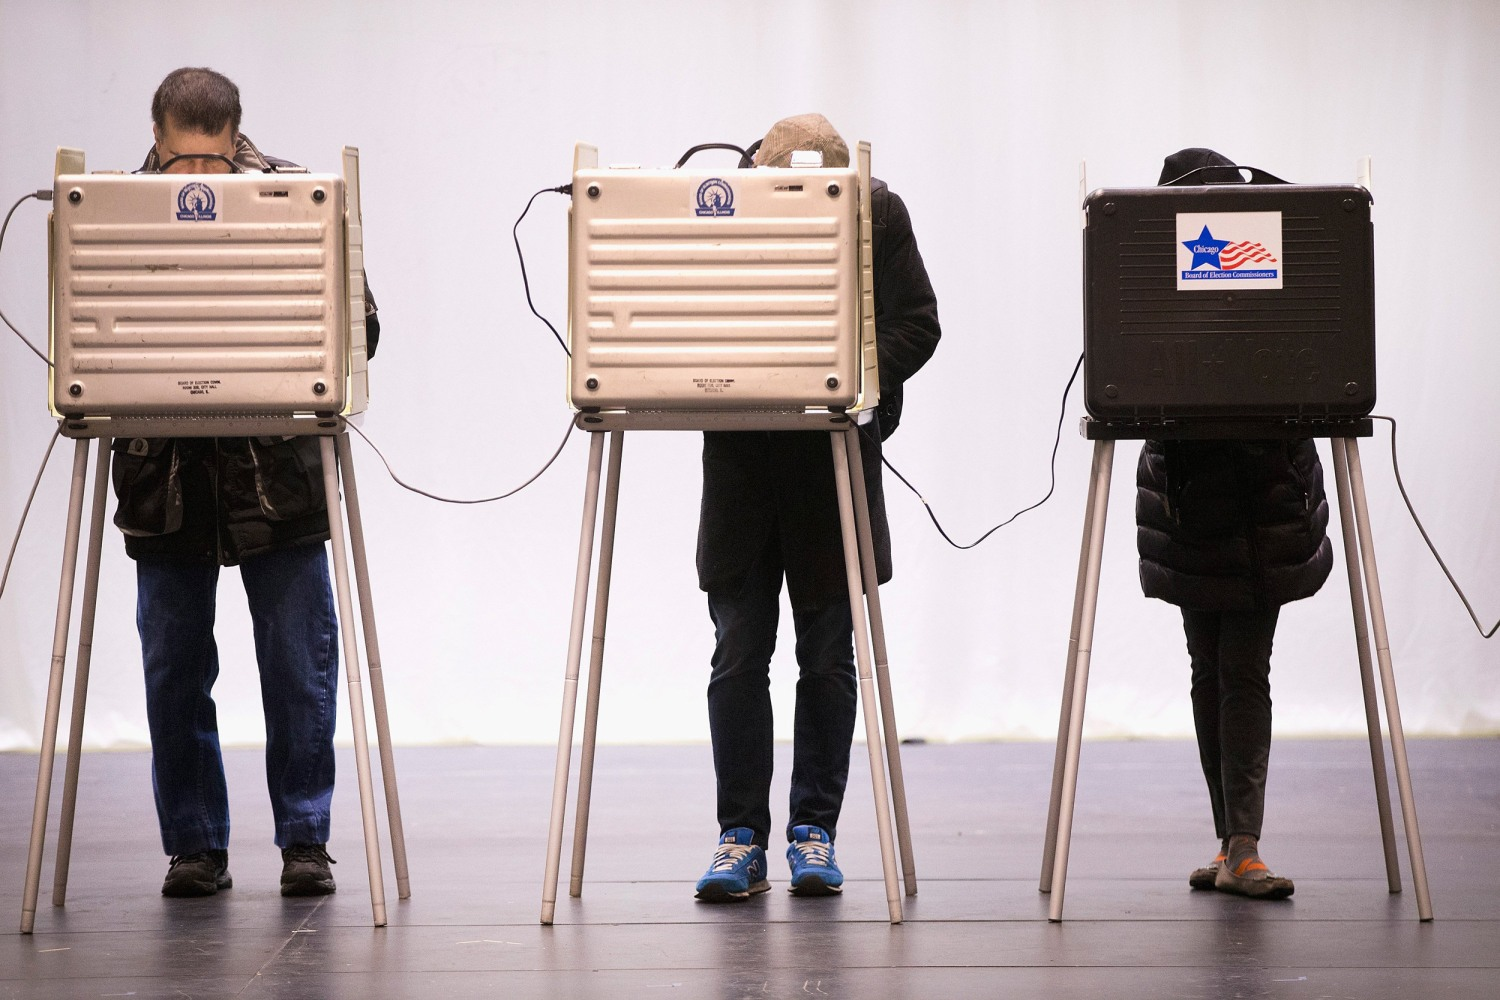 US Should Improve Voting Systems Amid Cyberattacks Threat